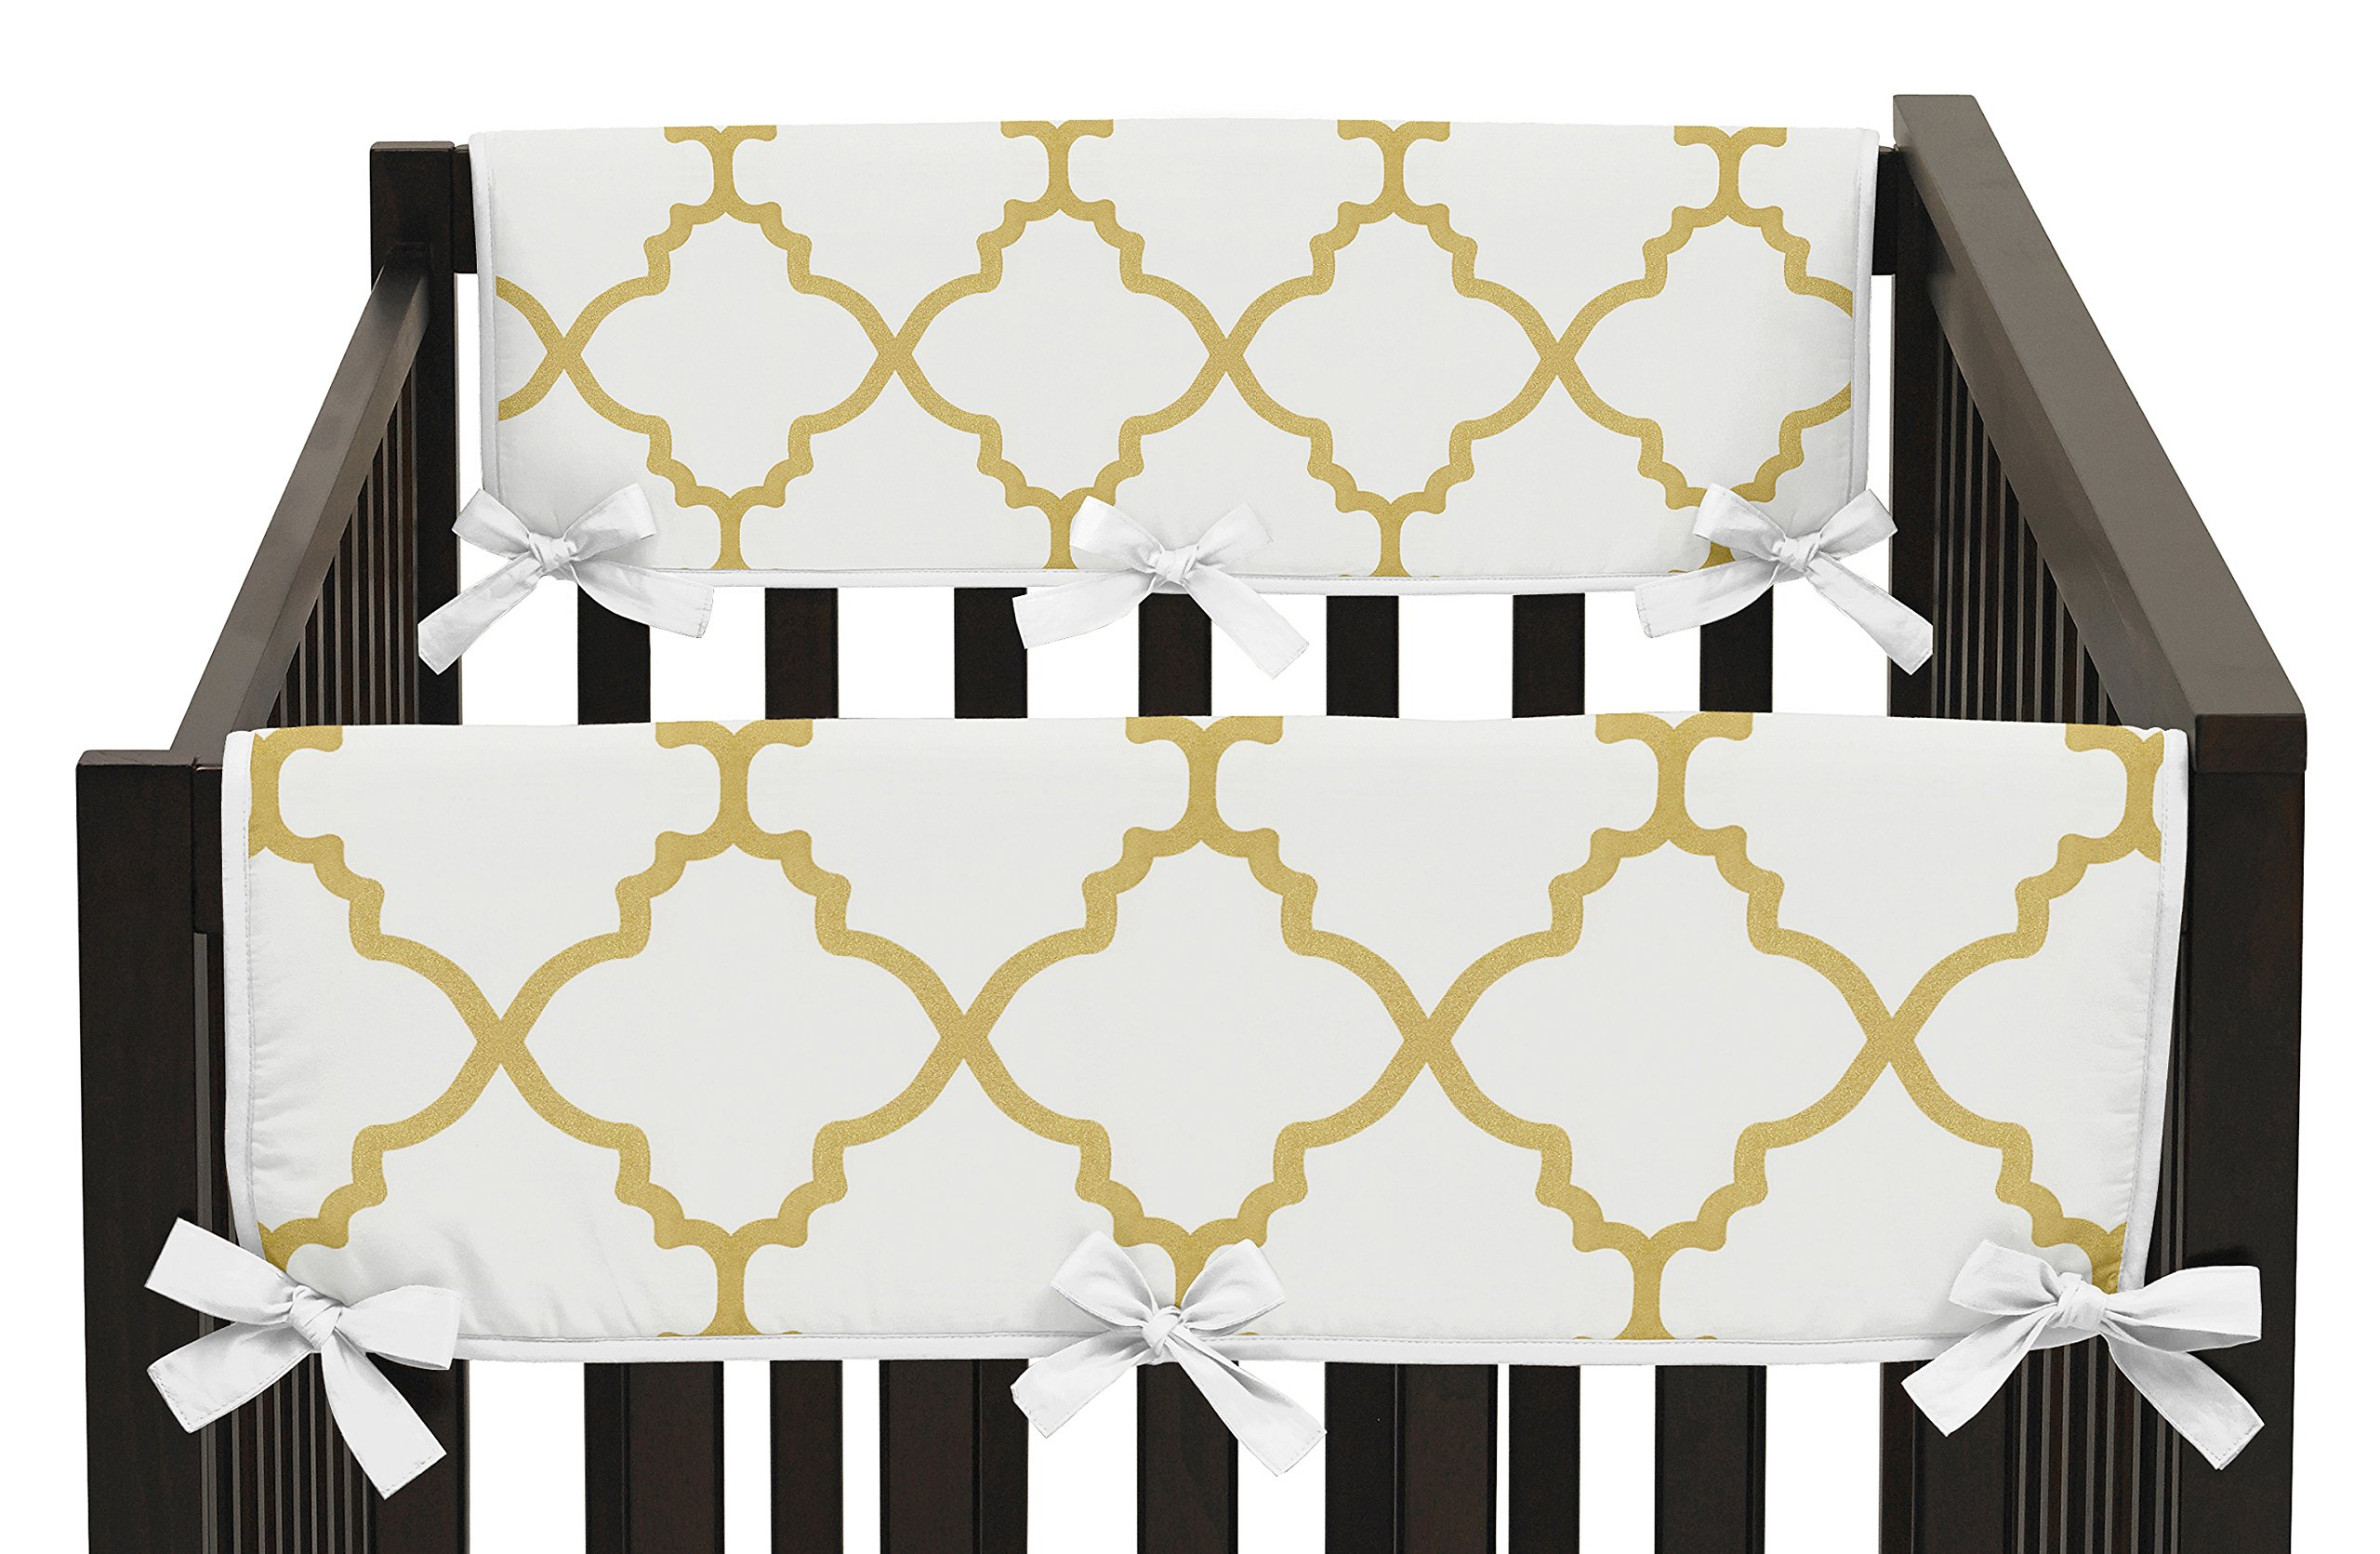 Sweet Jojo Designs 2-Piece White and Gold Trellis Lattice Teething Protector Cover Wrap Baby Crib Side Rail Guards